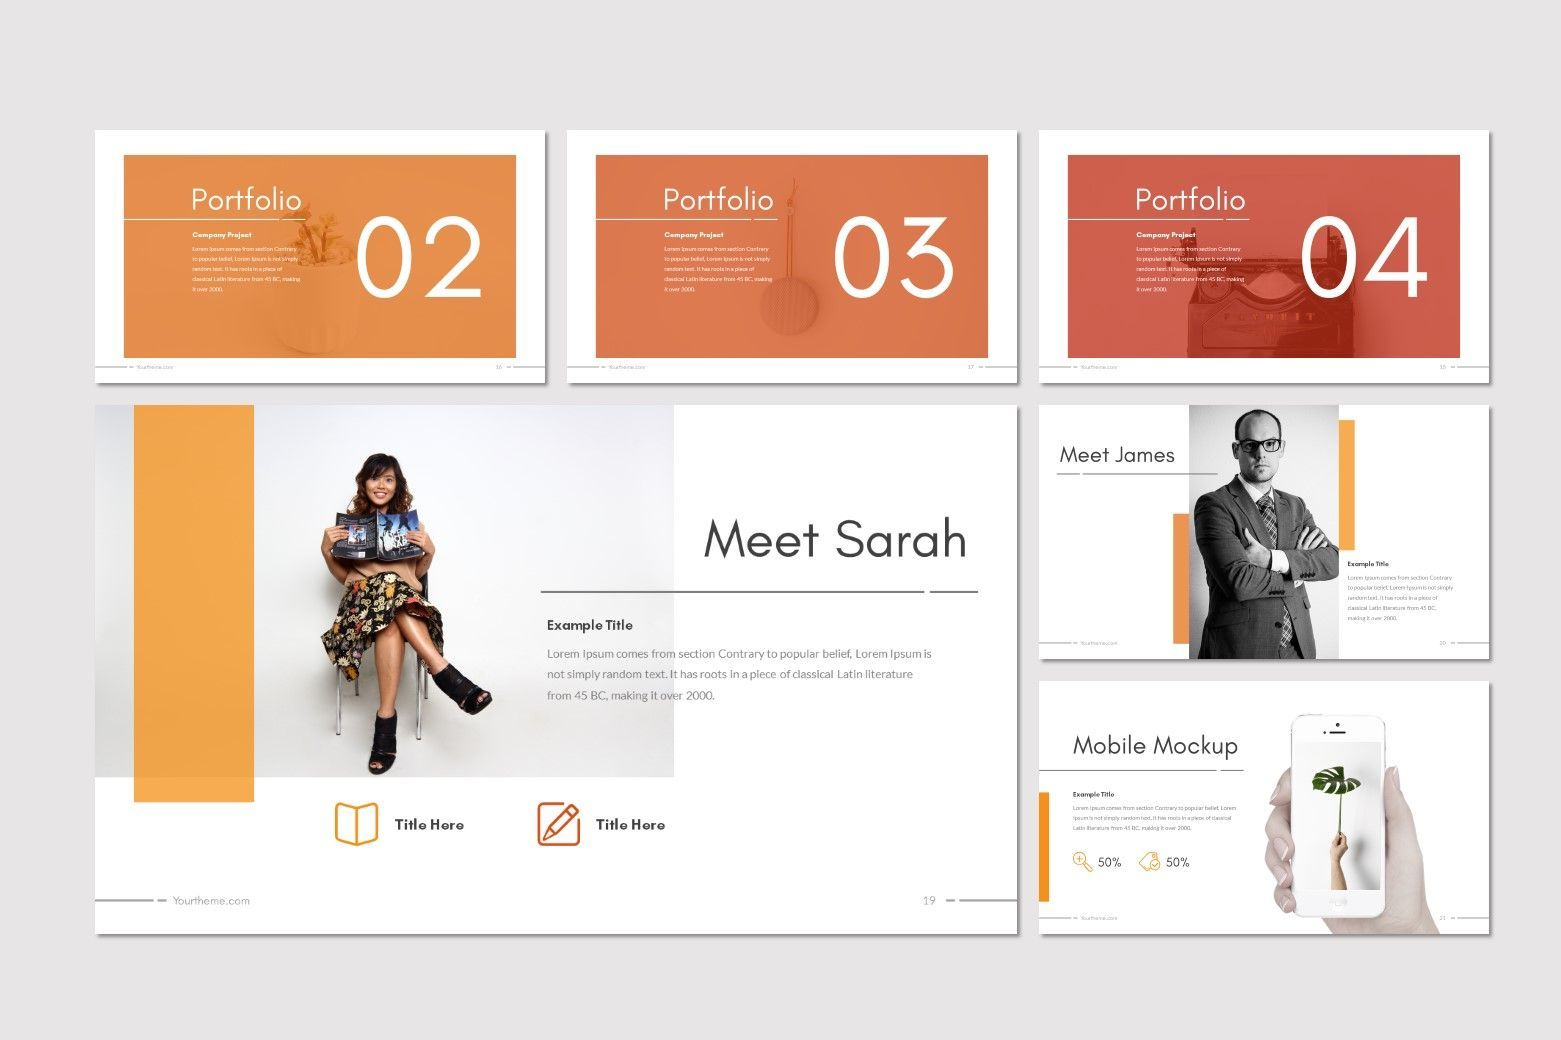 Moderno - PowerPoint Template, Slide 4, 08211, Presentation Templates — PoweredTemplate.com